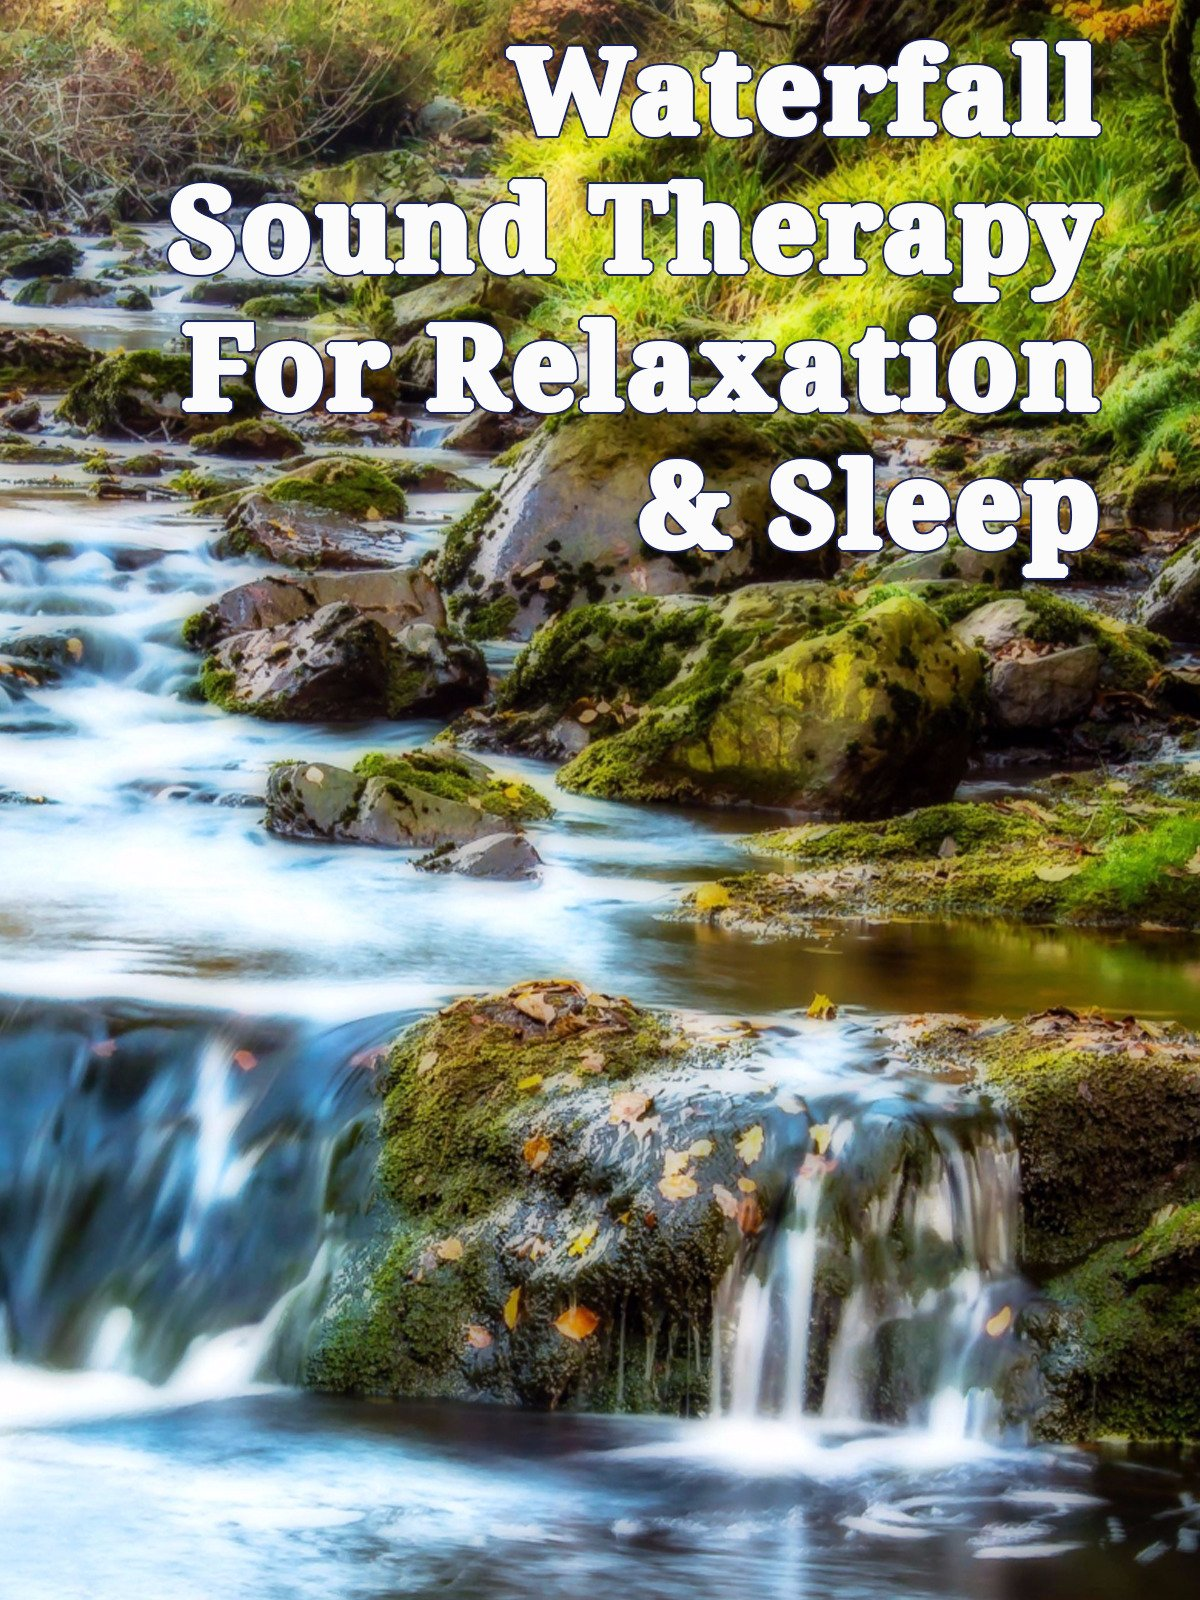 Waterfall Sound Therapy For Relaxation & Sleep on Amazon Prime Instant Video UK